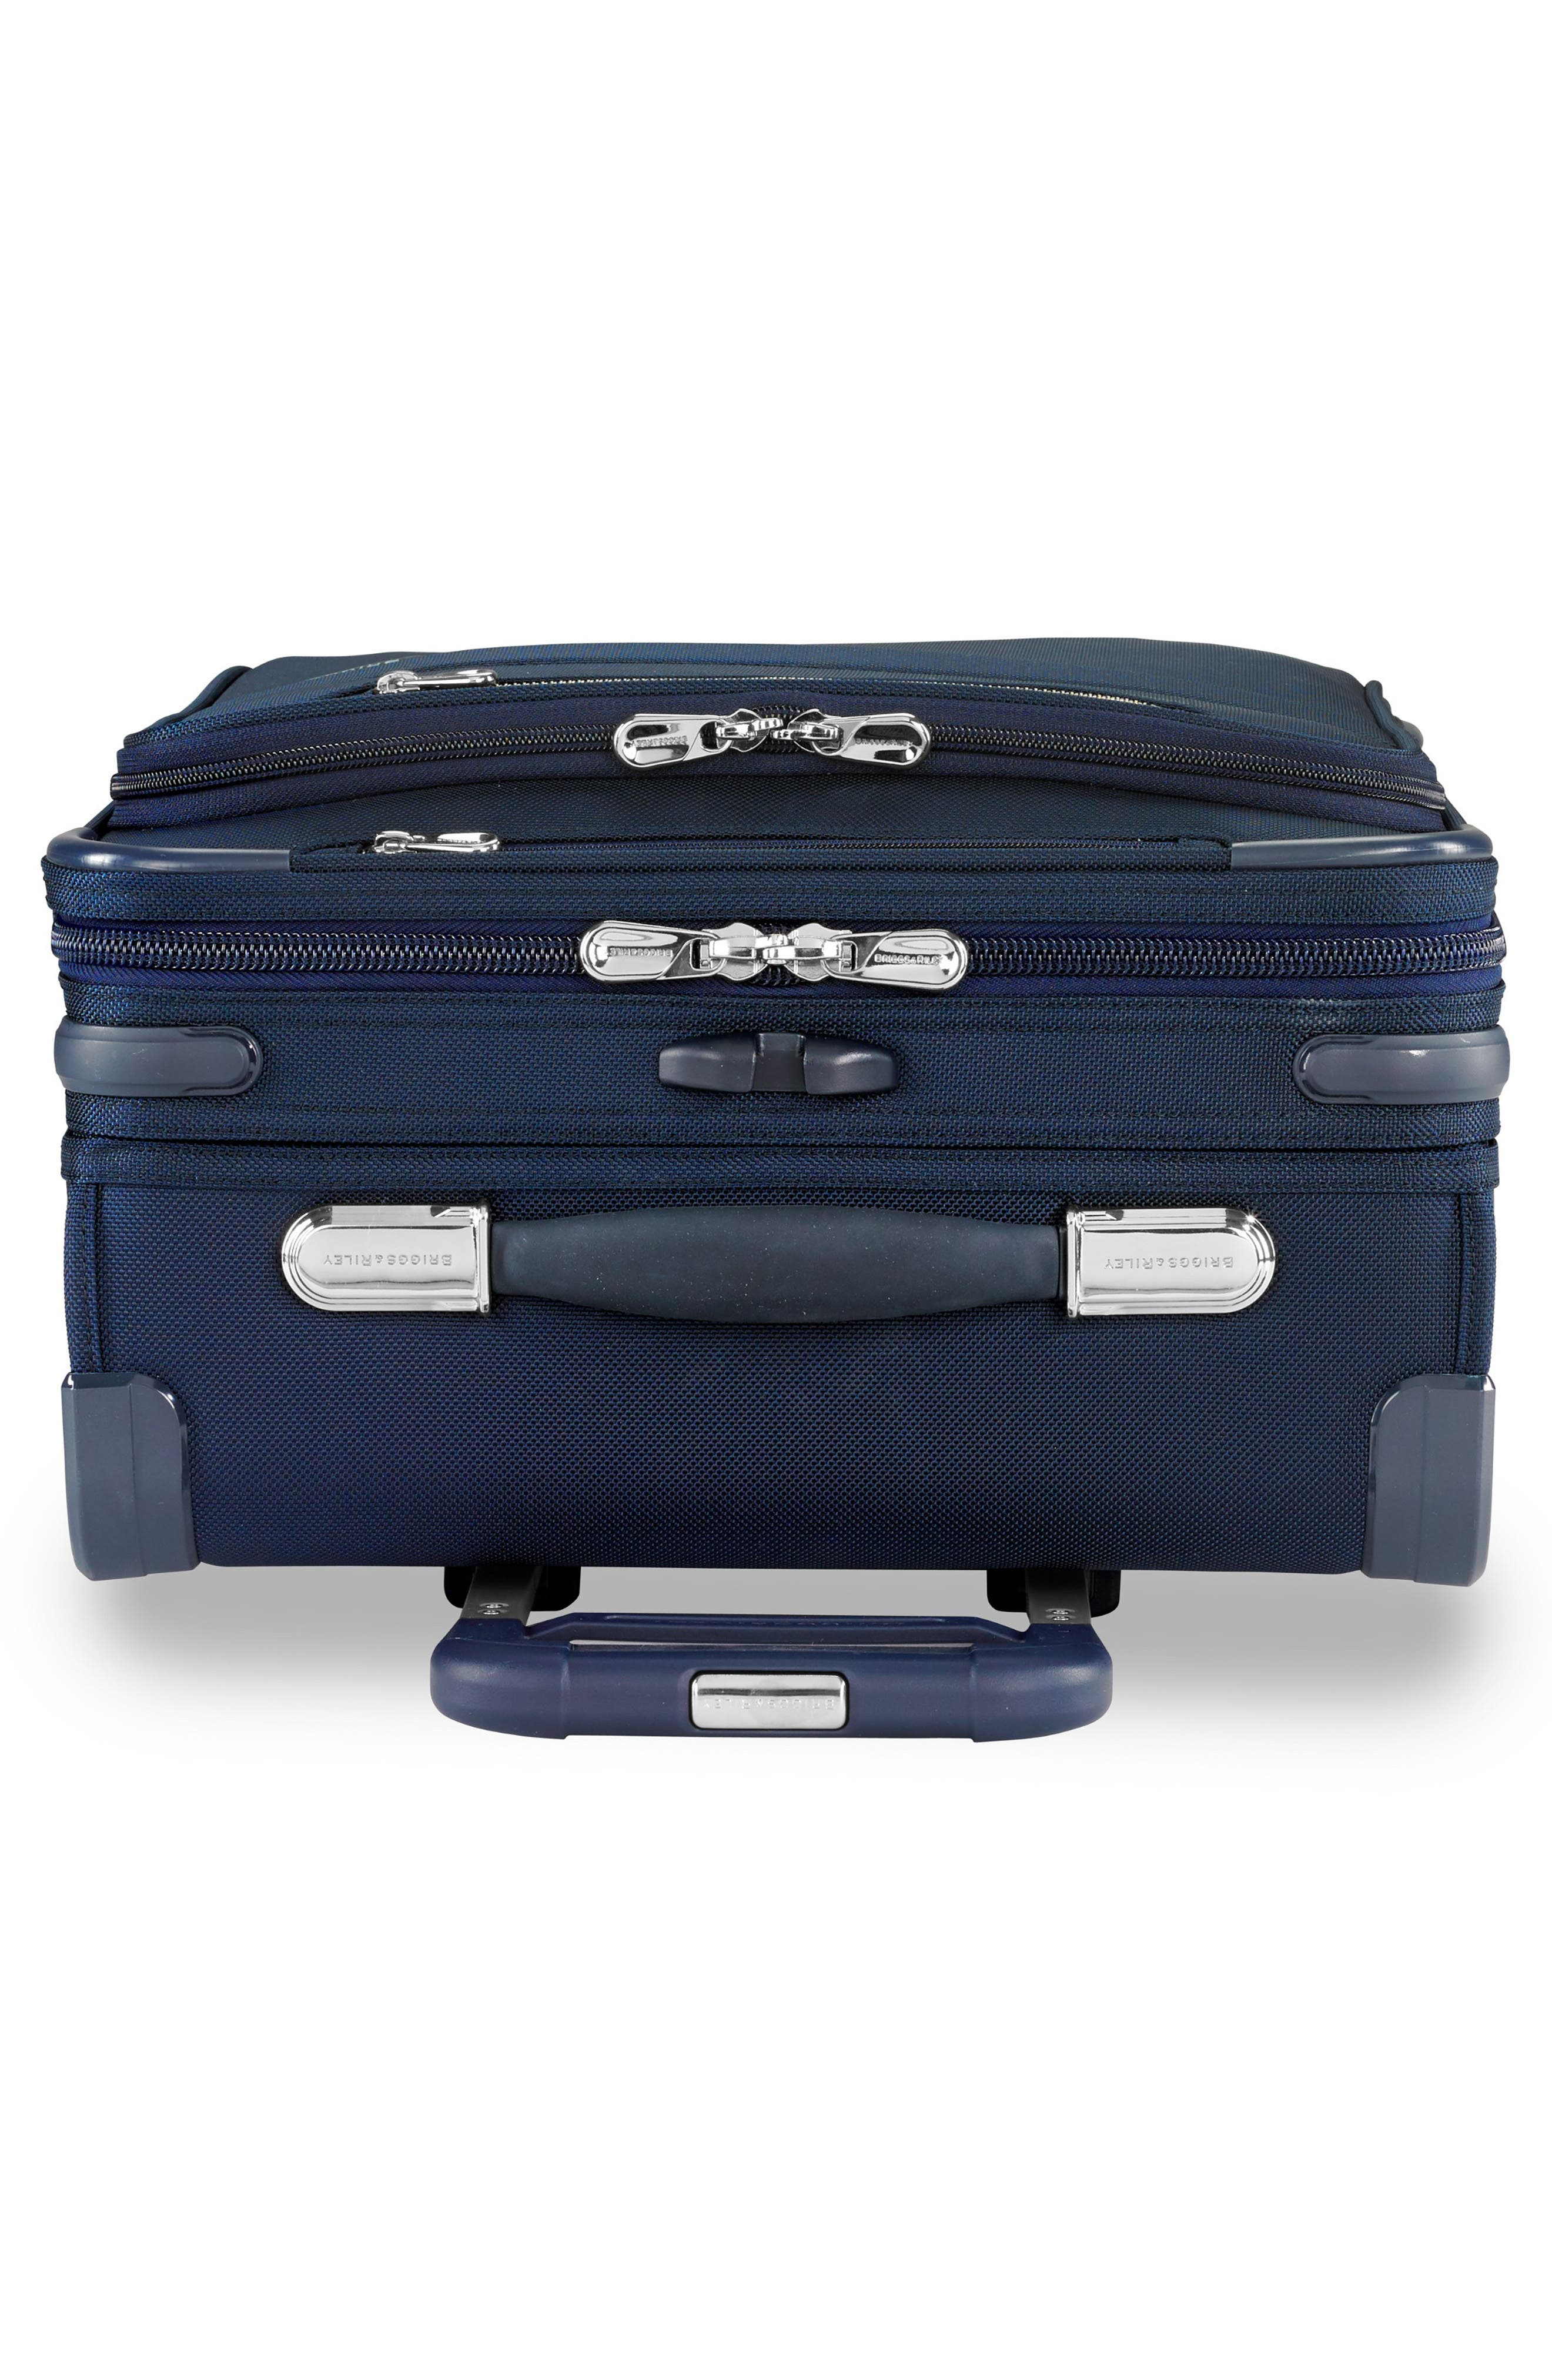 21-Inch Baseline Widebody International Rolling Carry-On,                             Alternate thumbnail 8, color,                             NAVY